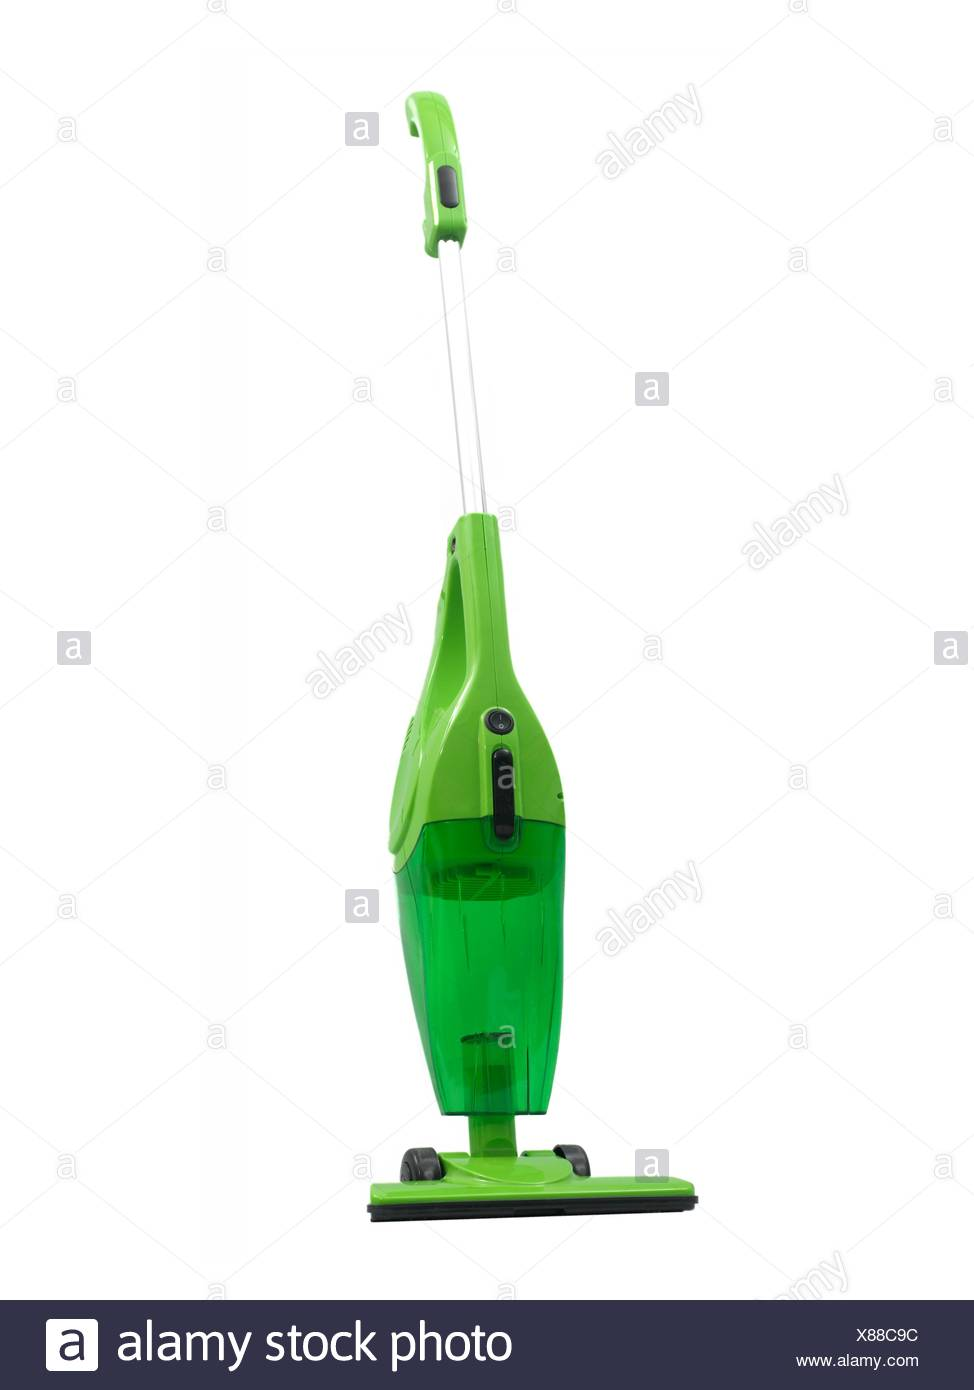 A vacuum cleaner isolated against a white background - Stock Image